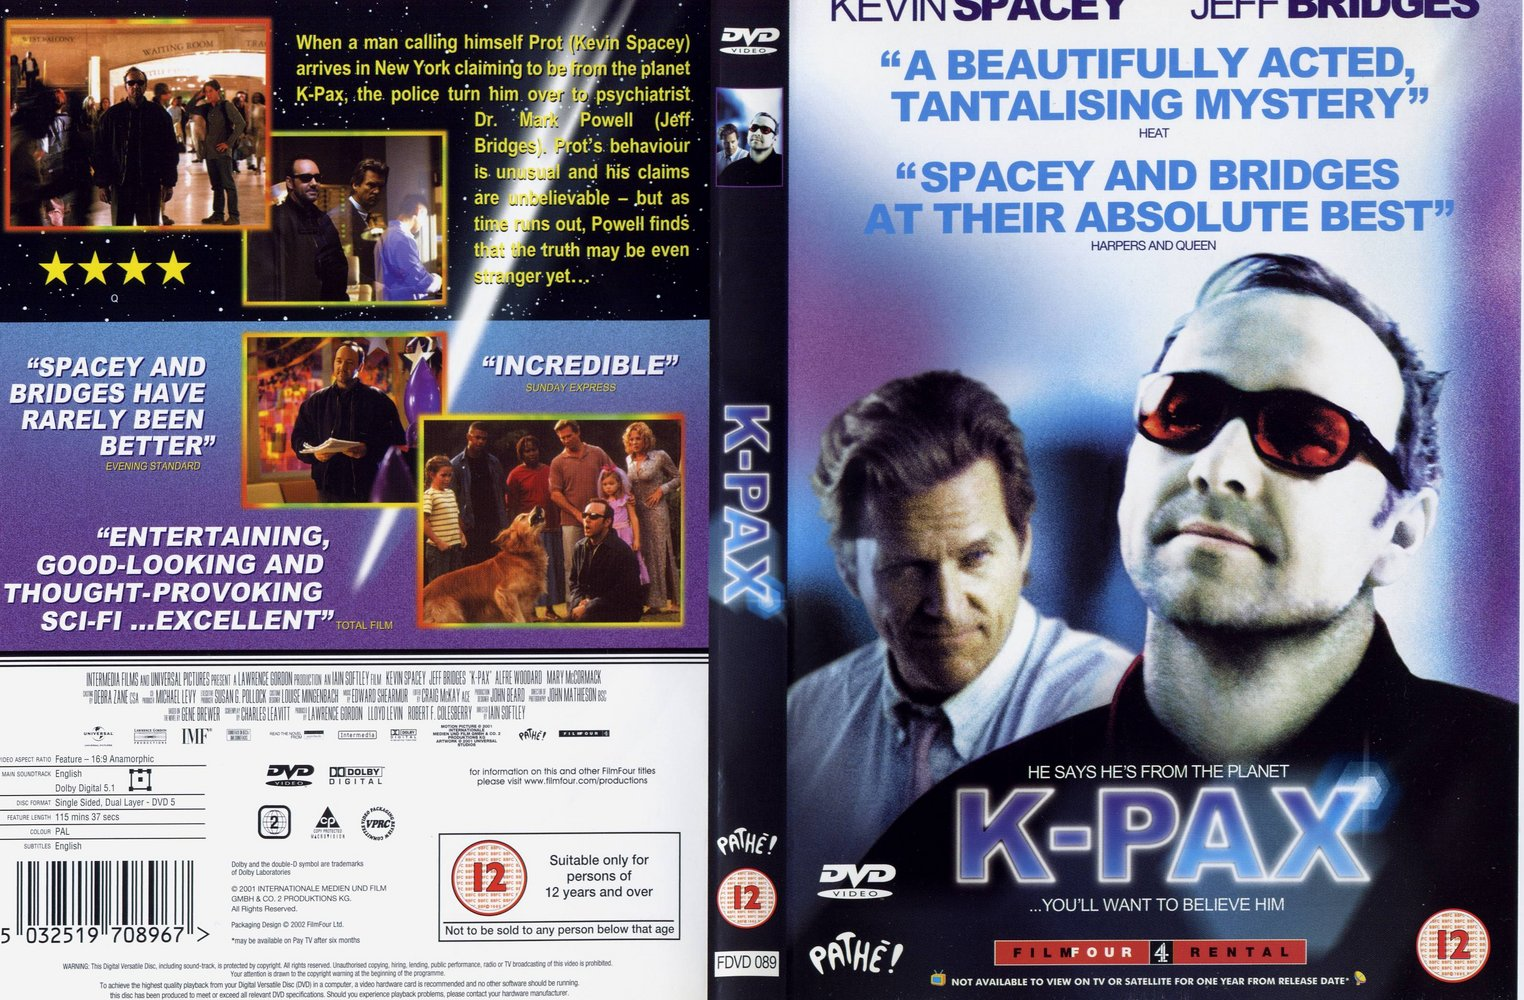 an analysis of iain softleys movie k pax A o scott reviews movie k-pax, directed by iain softley and starring kevin  spacey and jeff bridges photo (m.